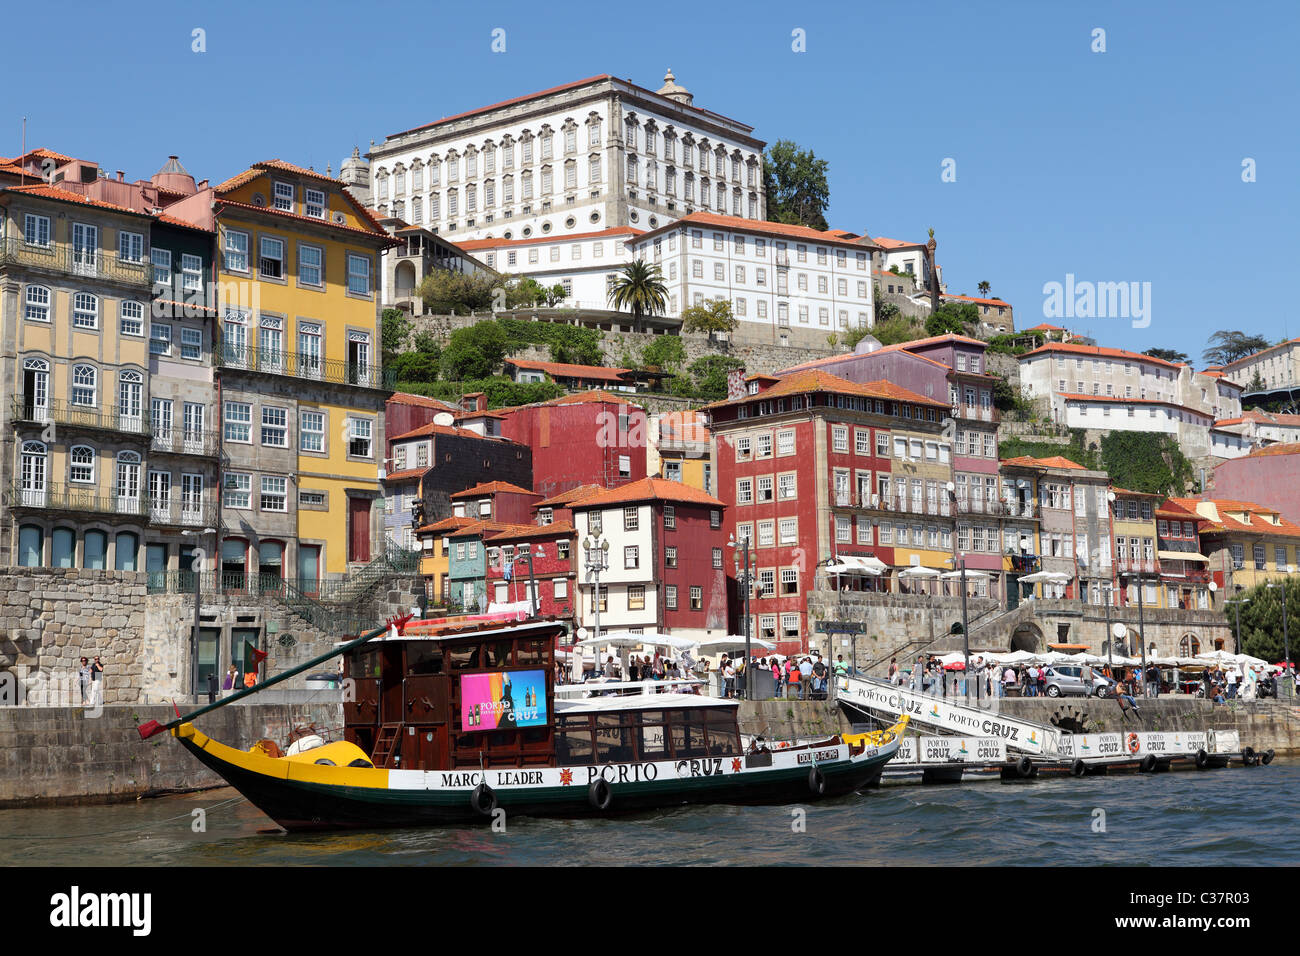 A cruise boat docks by the riverside Ribeira district of Porto, Portugal. - Stock Image